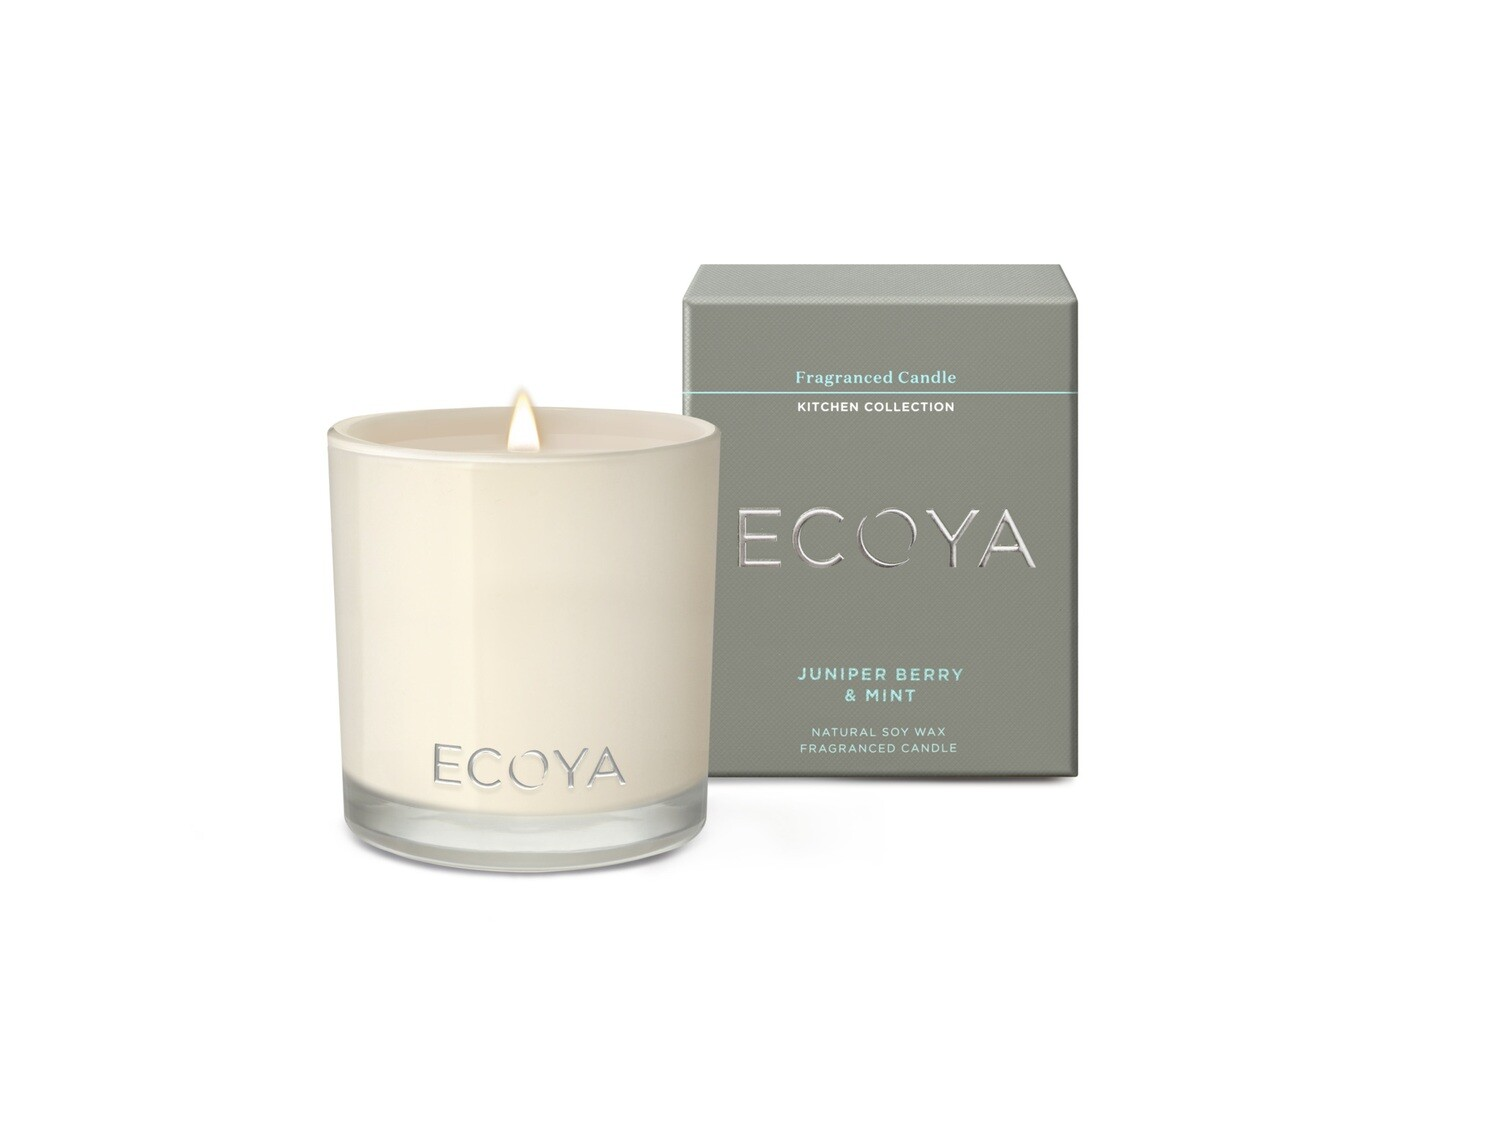 Ecoya Candle - Juniper Berry & Mint